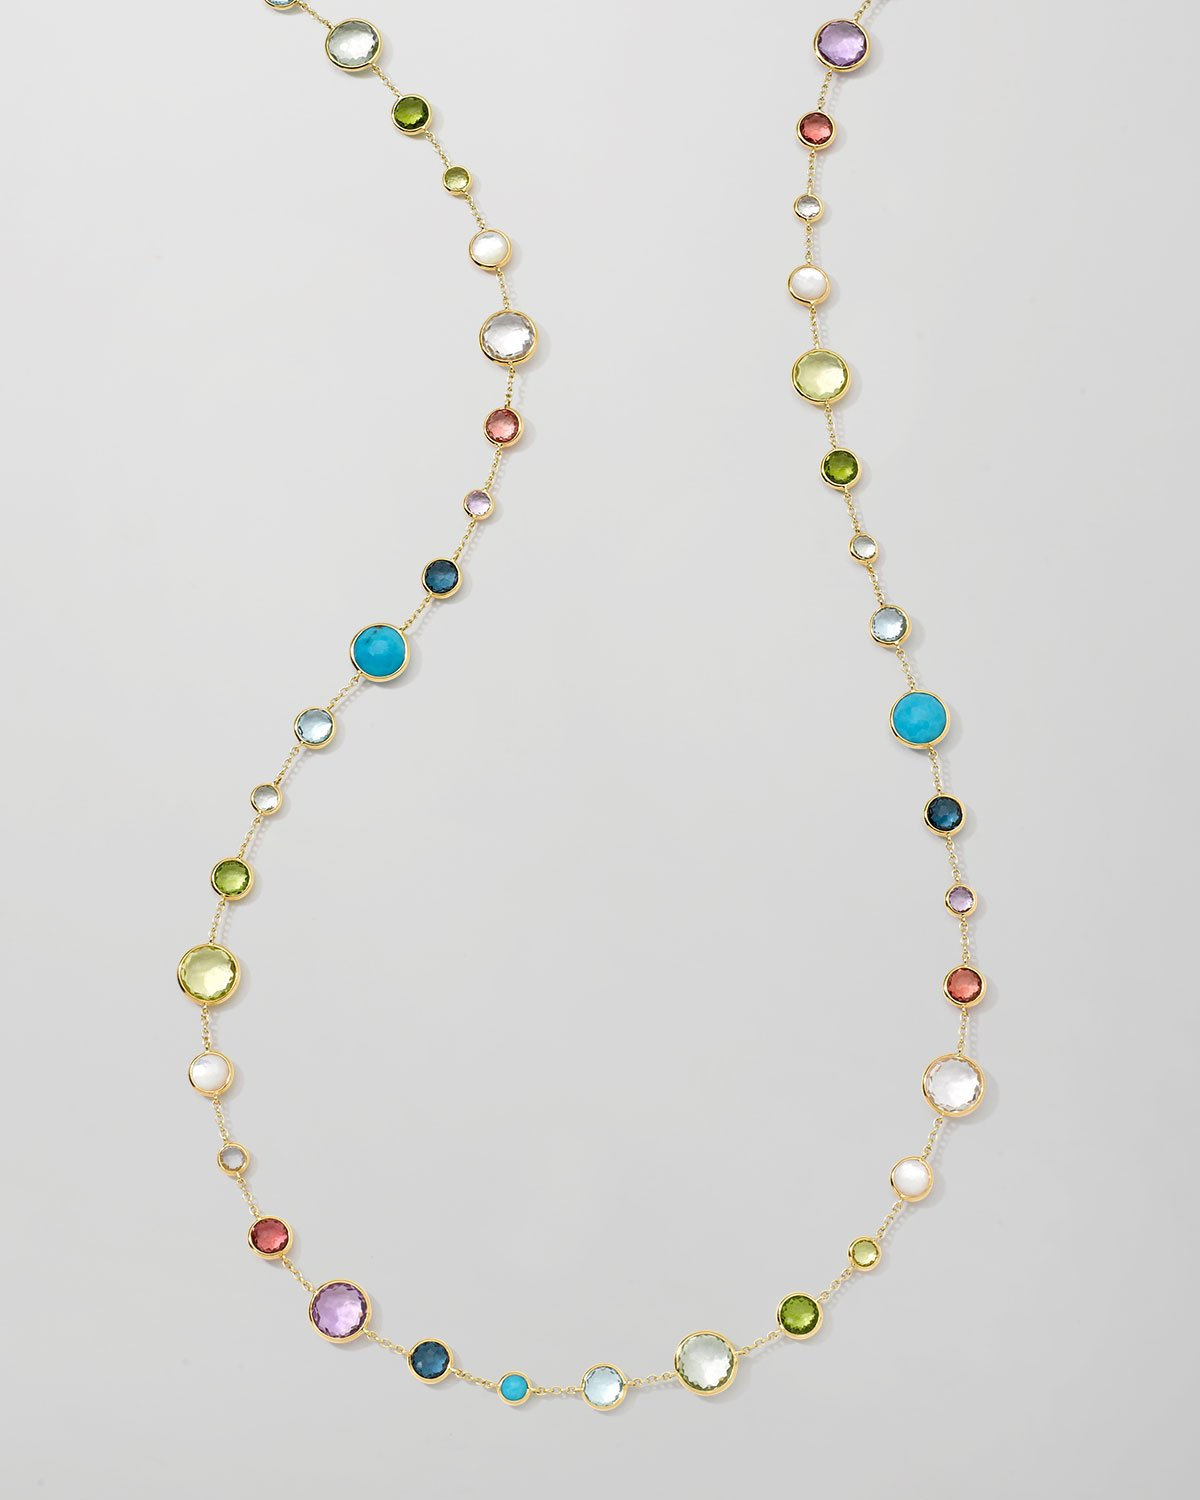 Ippolita 18k Gold Rock Candy Lollitini Necklace in Multi, 36